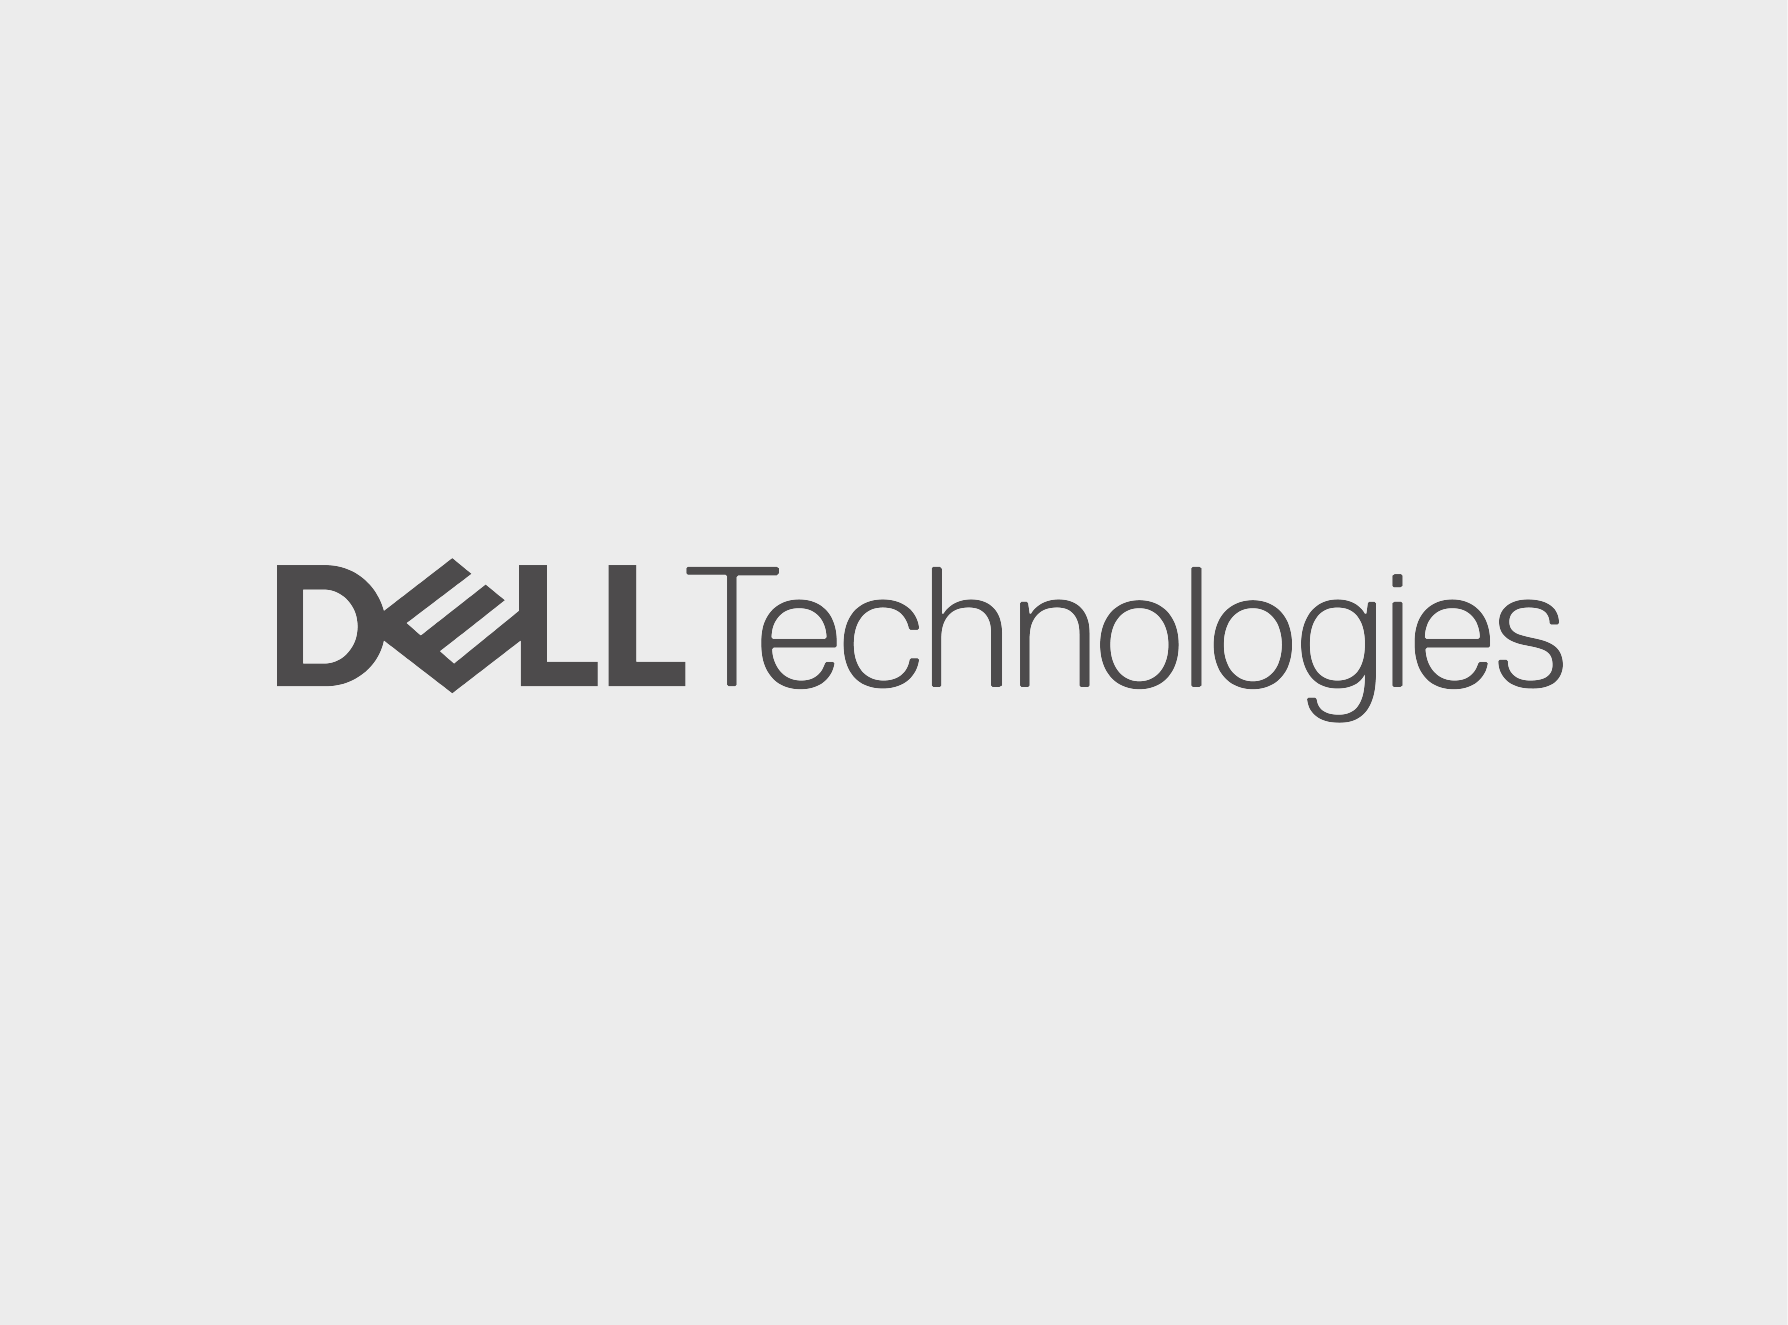 Dell Technologies - Infront